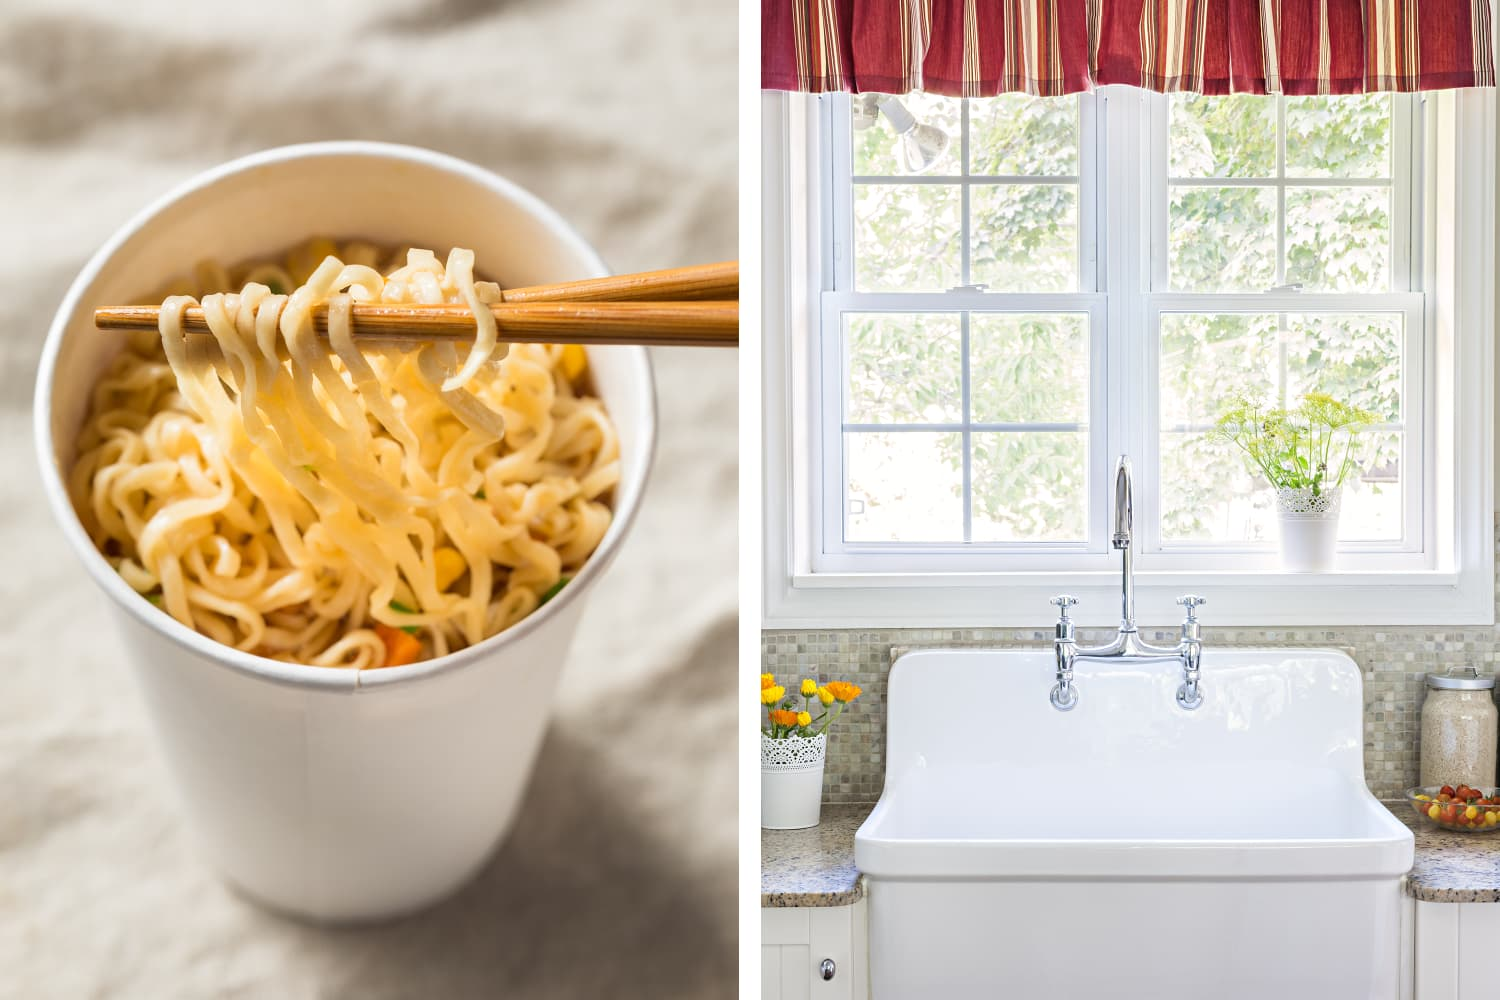 The Strangest Hack You Ve Never Heard Of Fixing Your Sink With Instant Ramen Kitchn